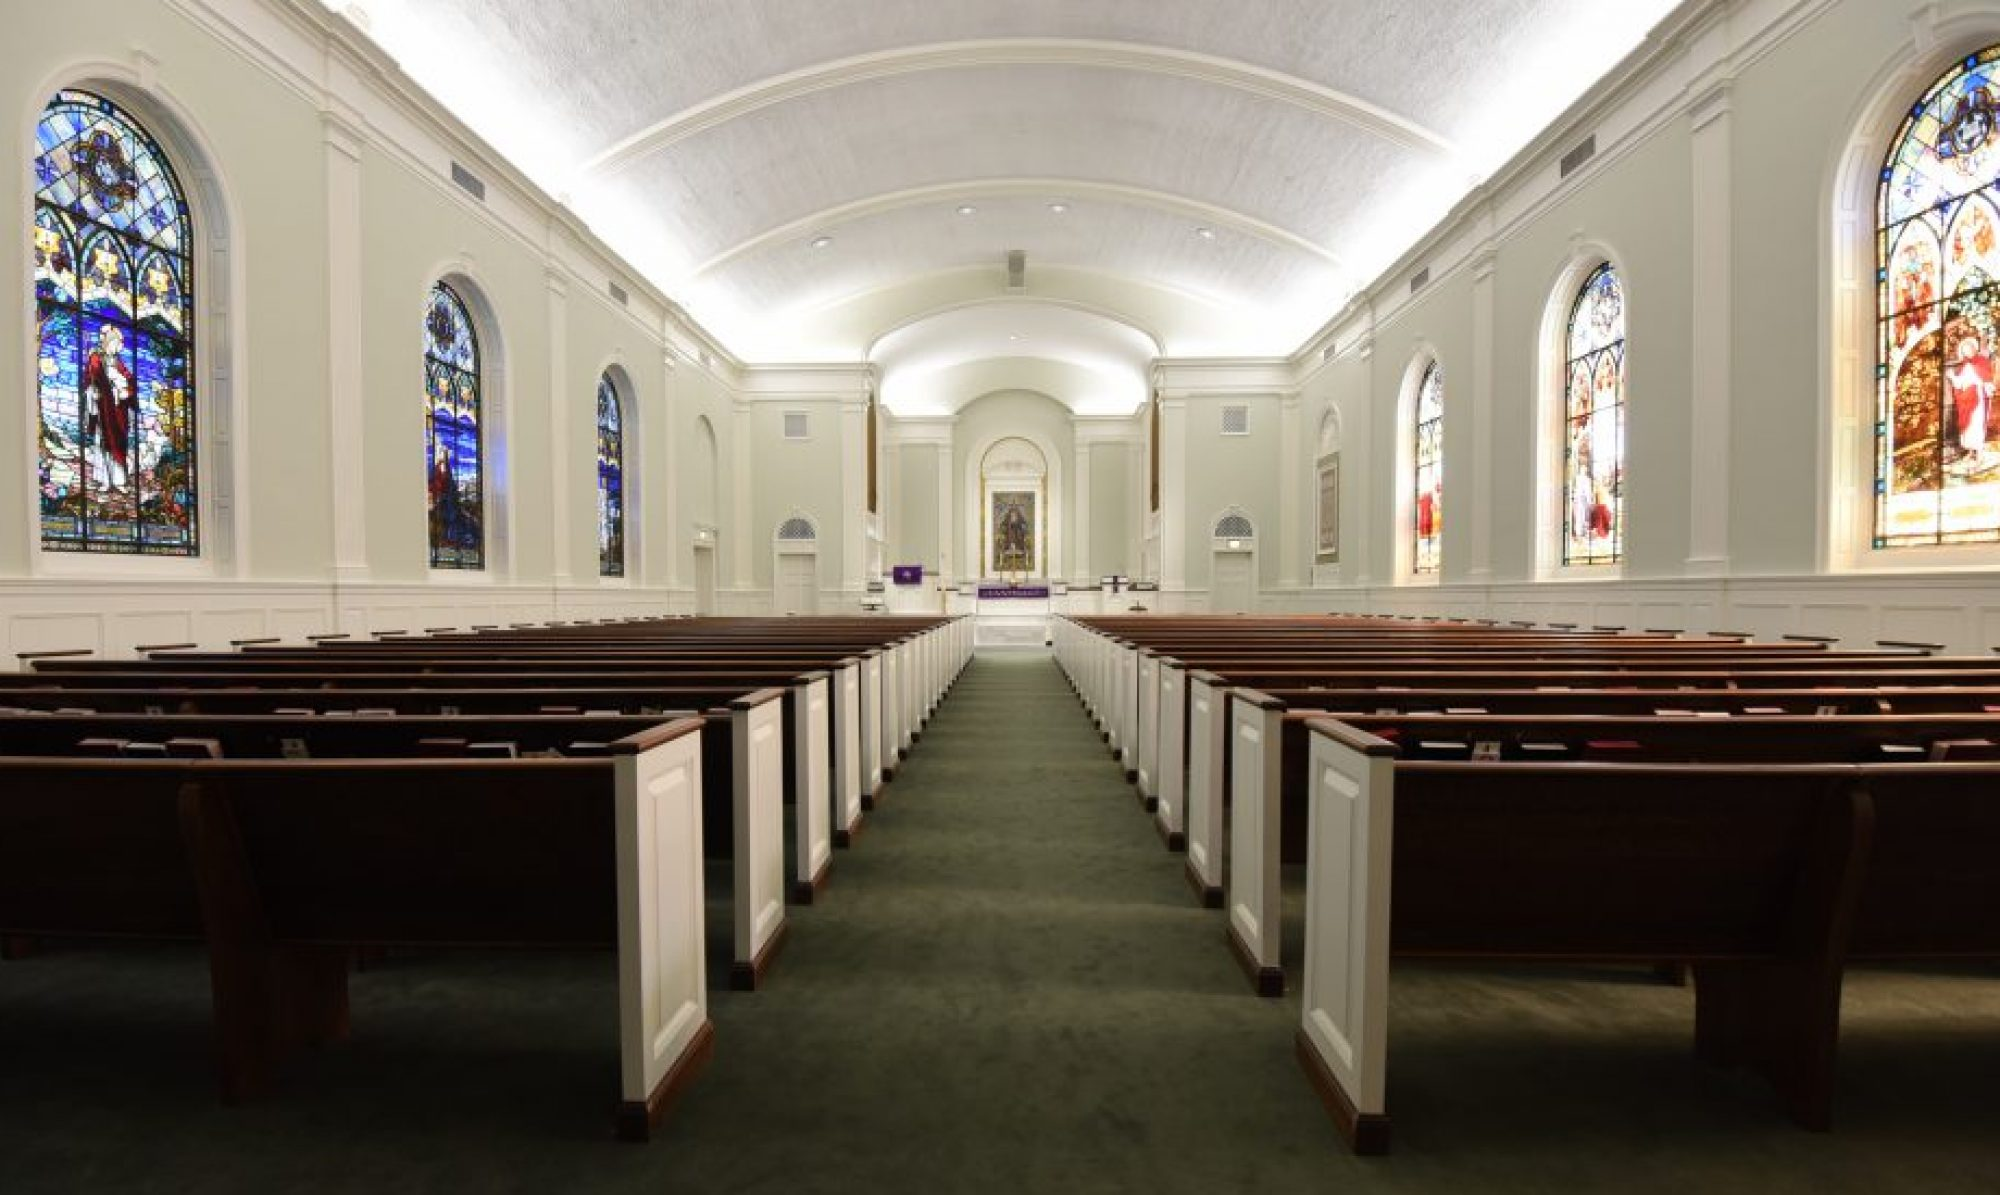 Clearbranch UMC cancels Sunday morning services in response to coronavirus outbreak